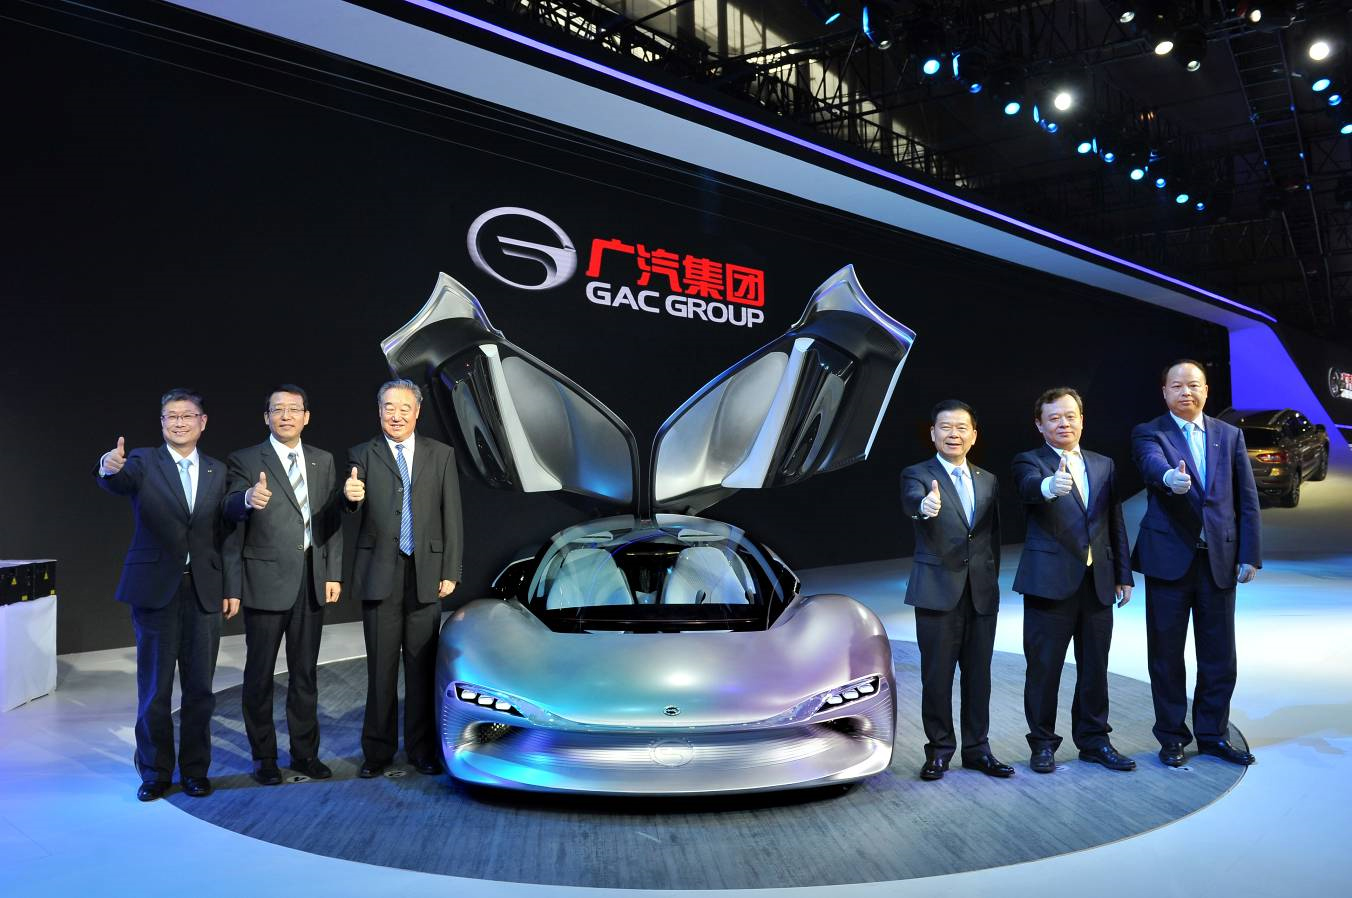 GAC Motor unveils EnLight, its first smart electric concept car, at Auto Guangzhou